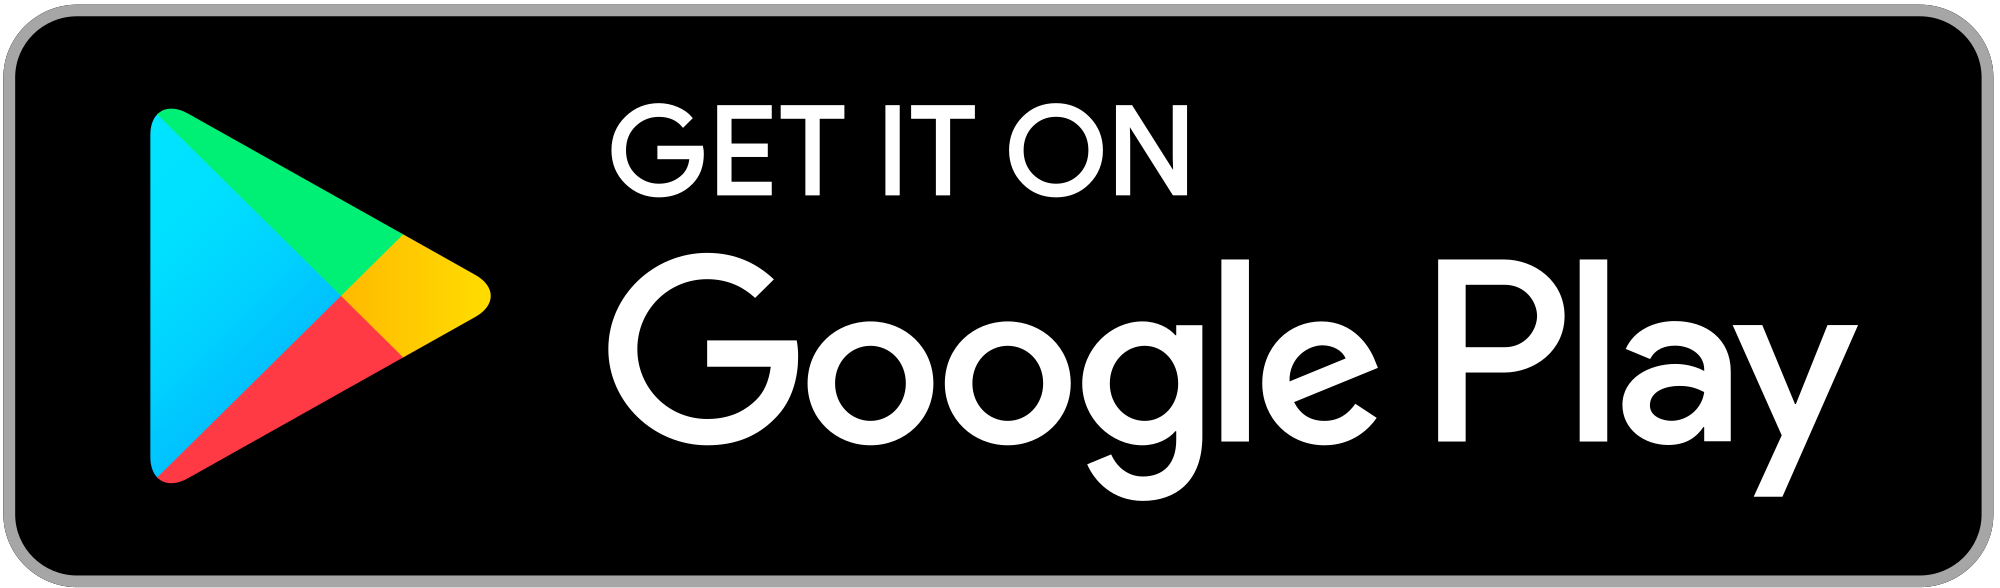 Get It On Google Play Badge Png - Open Hdpng.com , Transparent background PNG HD thumbnail